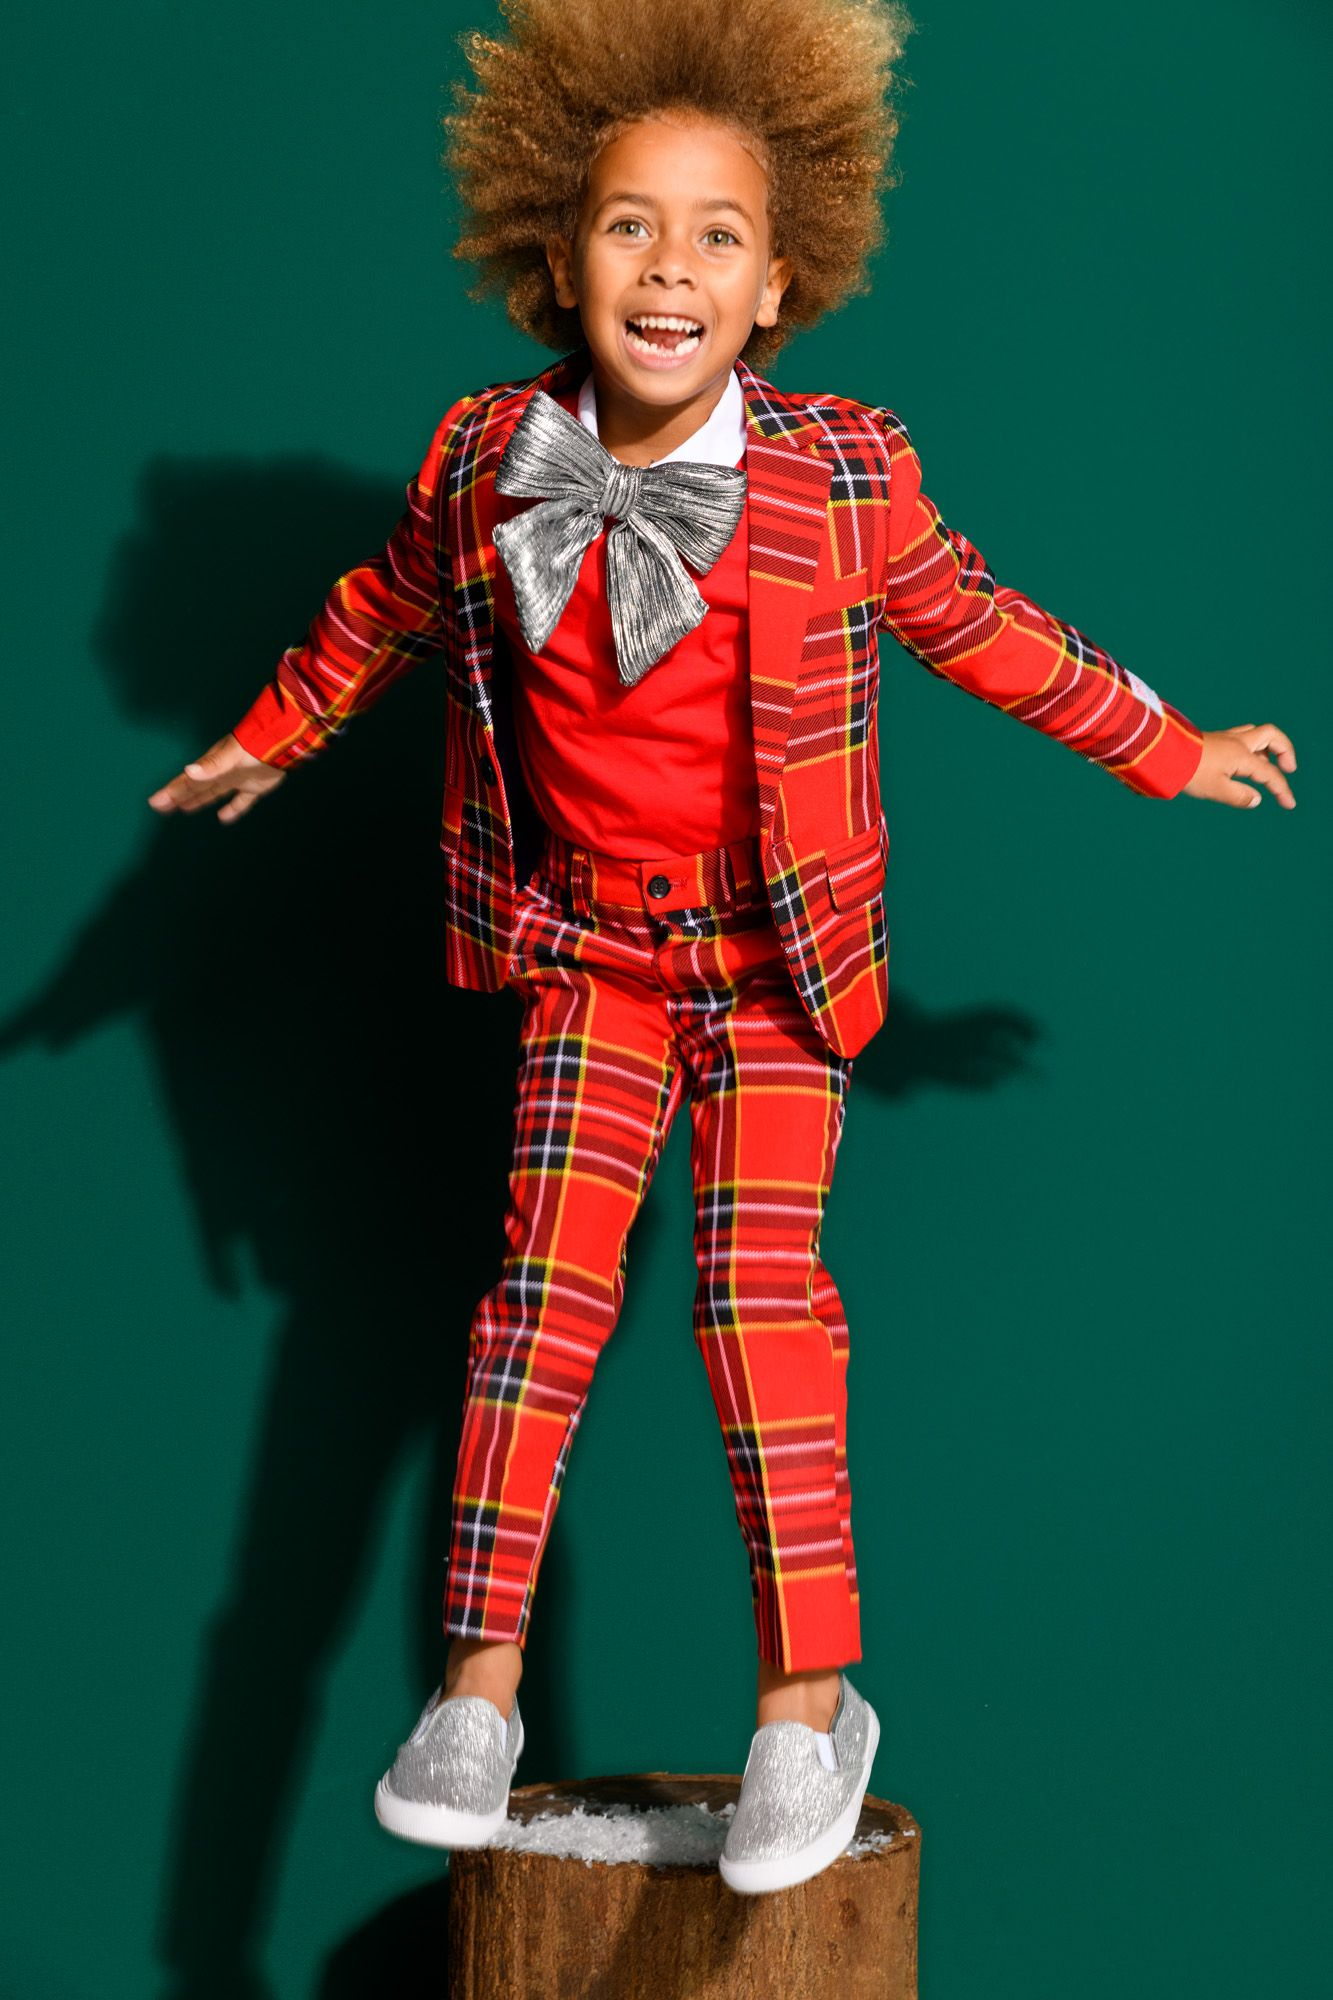 festive boys suits for the christmas season available in four styles